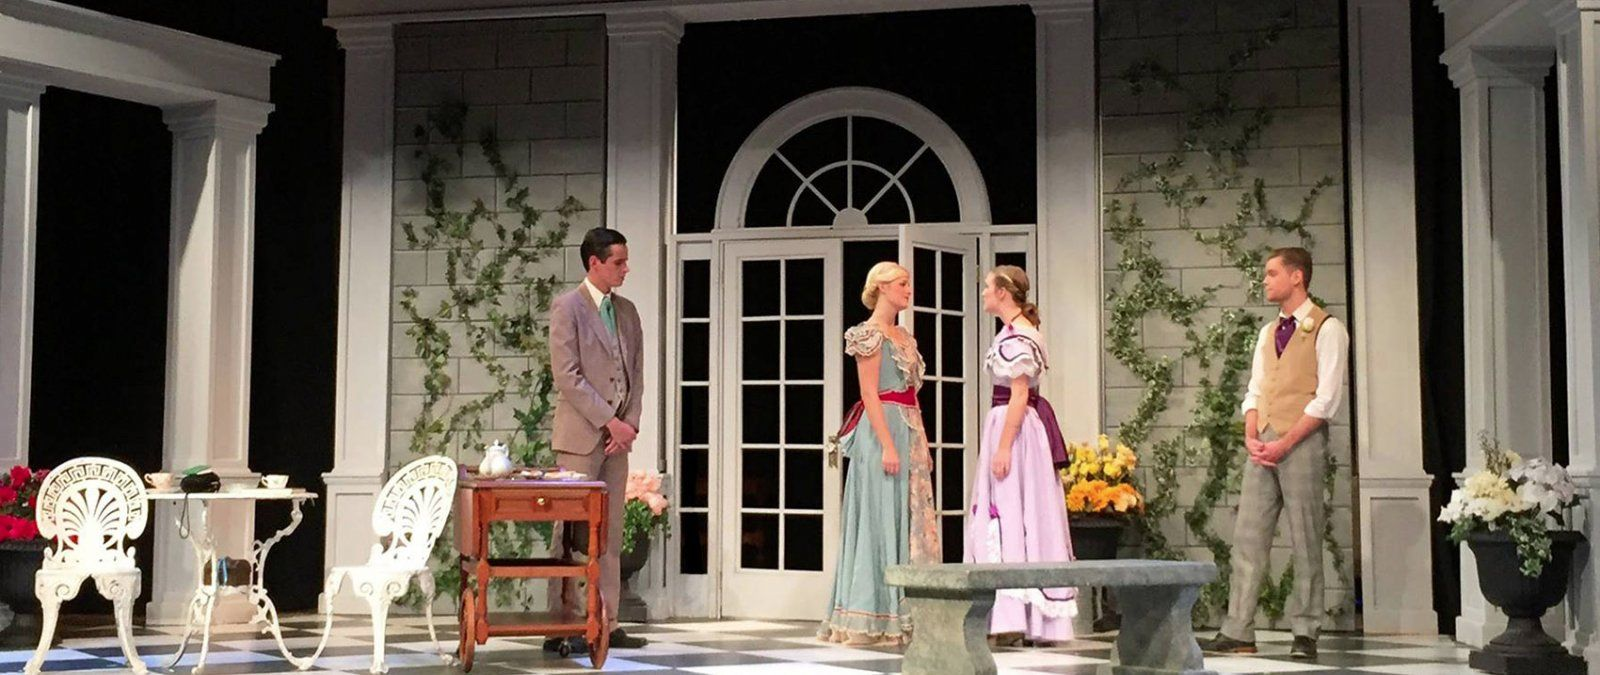 Two men and two women gently conversing on the stage of The Importance of Being Ernest